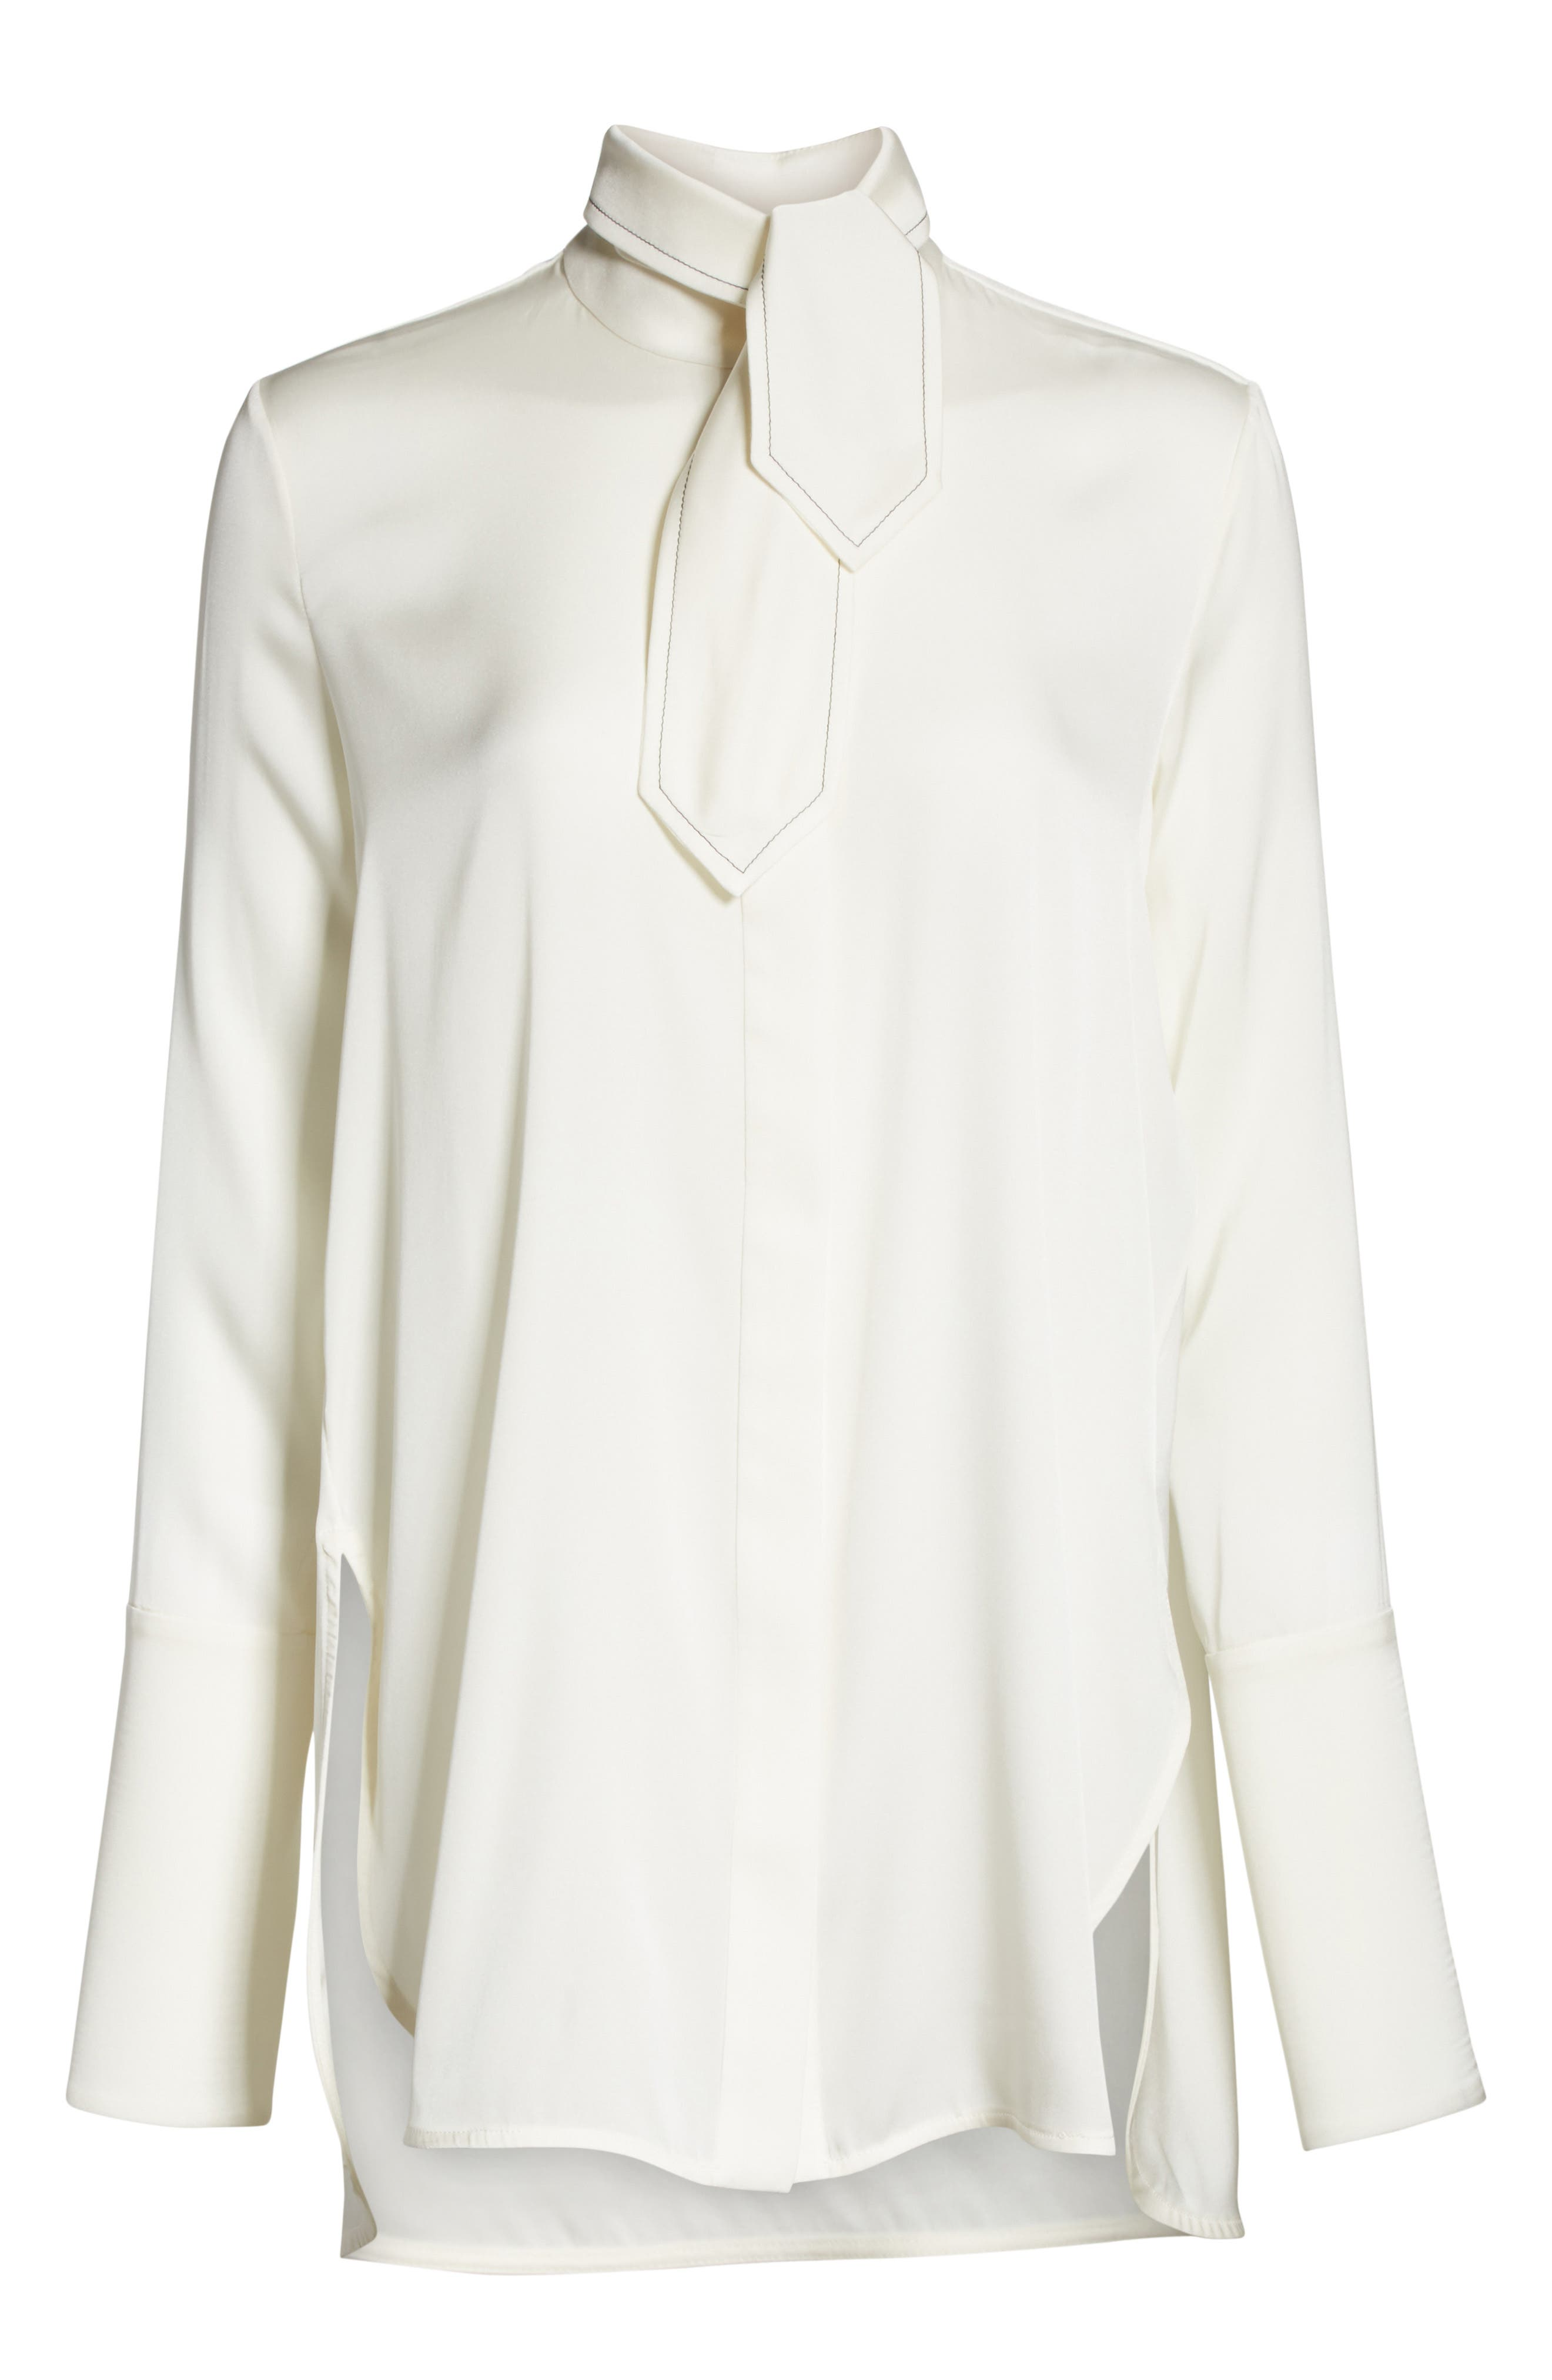 Ride Lonesome Tie Neck Blouse,                             Alternate thumbnail 6, color,                             900